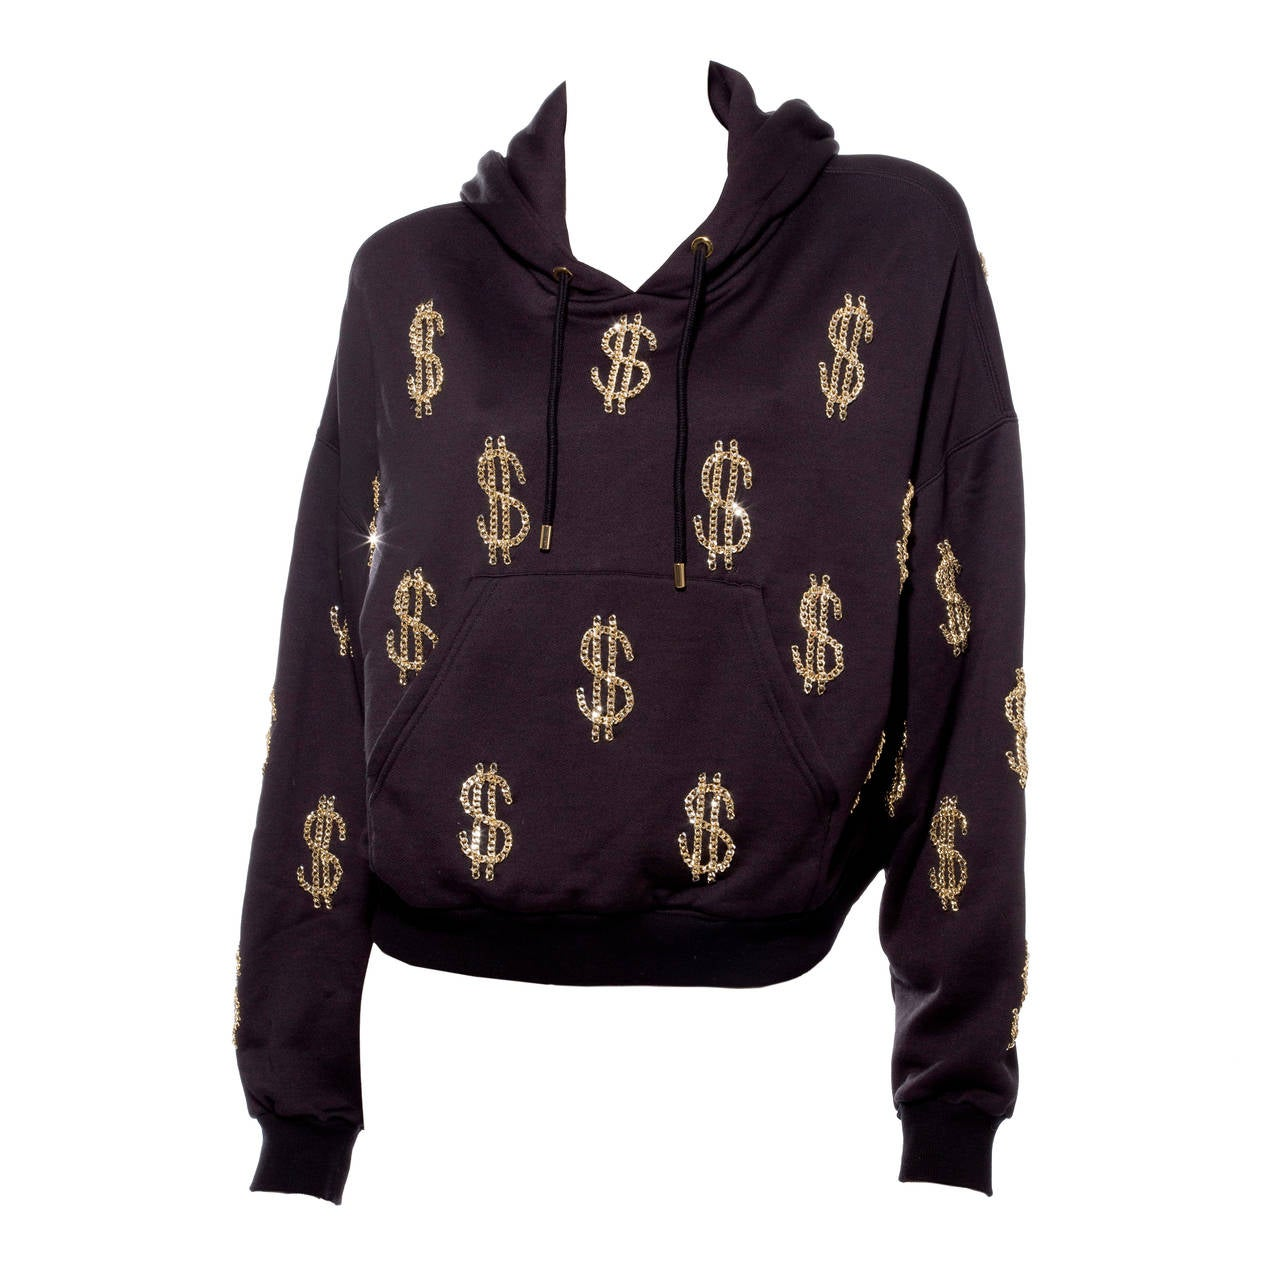 Moschino Couture Hoodie With Chain-Link Dollar Sign Appliques